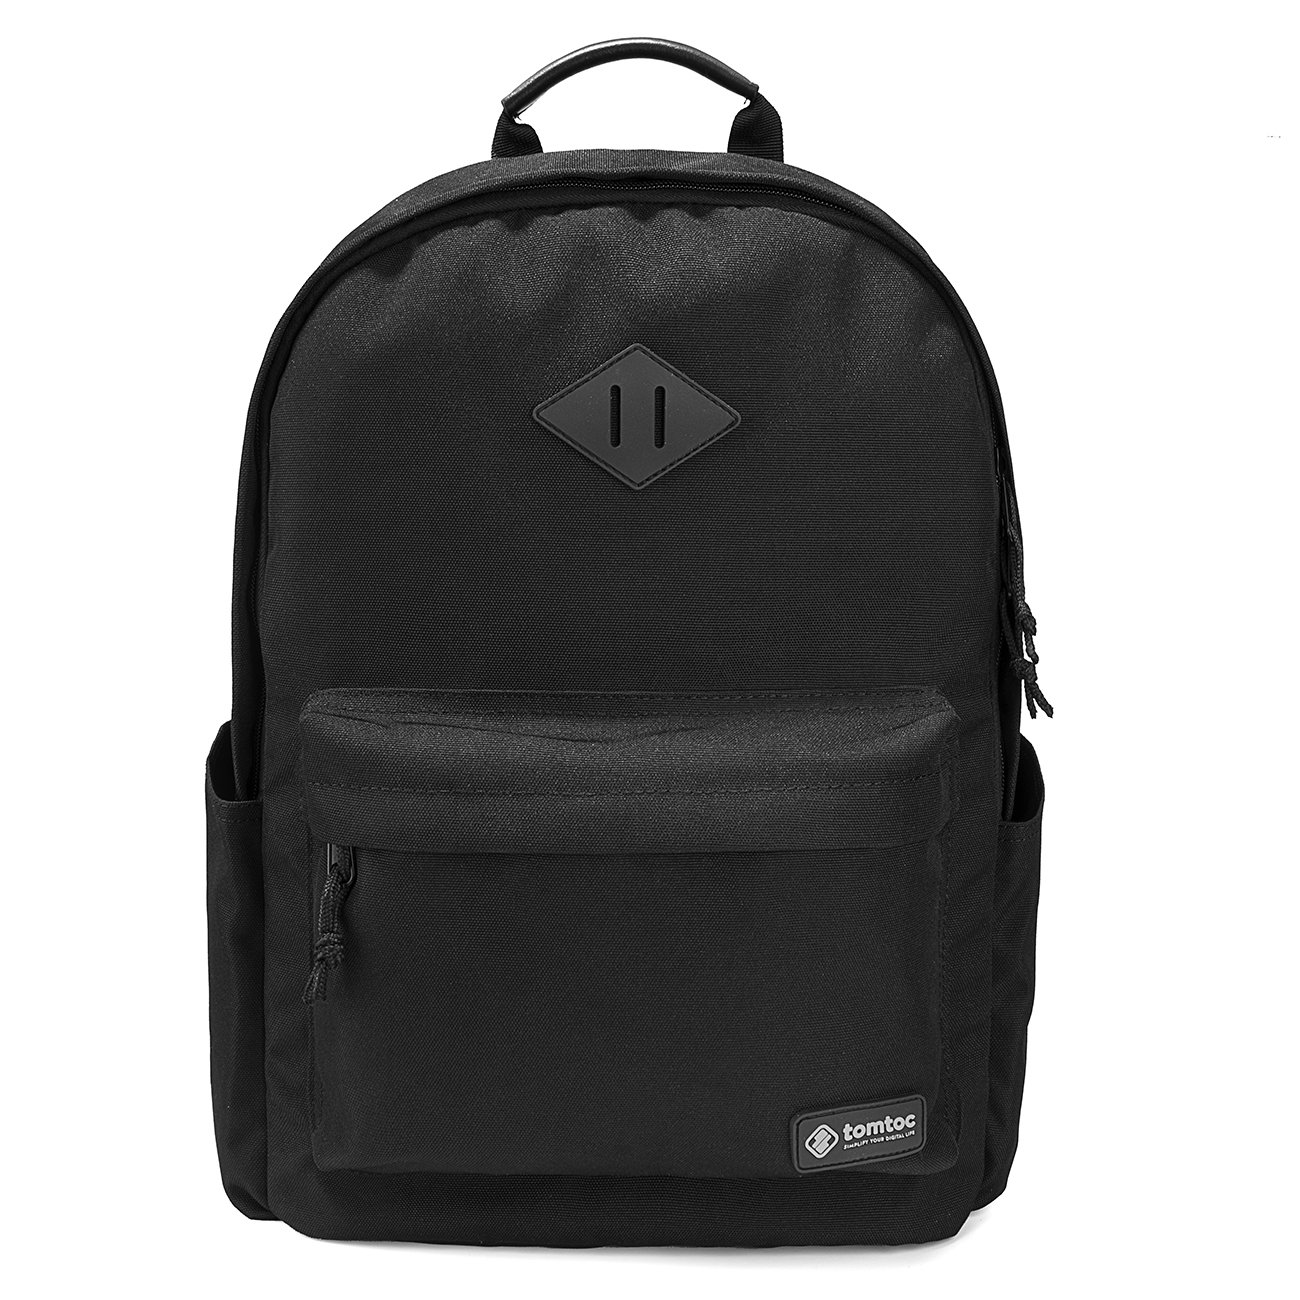 College Backpack, Tomtoc 15.6 Inch Laptop Backpack Computer Bag Daypack Travel Bag School Bookbags Weekend Bag   Fits Up To 15.6 Inch Laptops, Black by Tomtoc